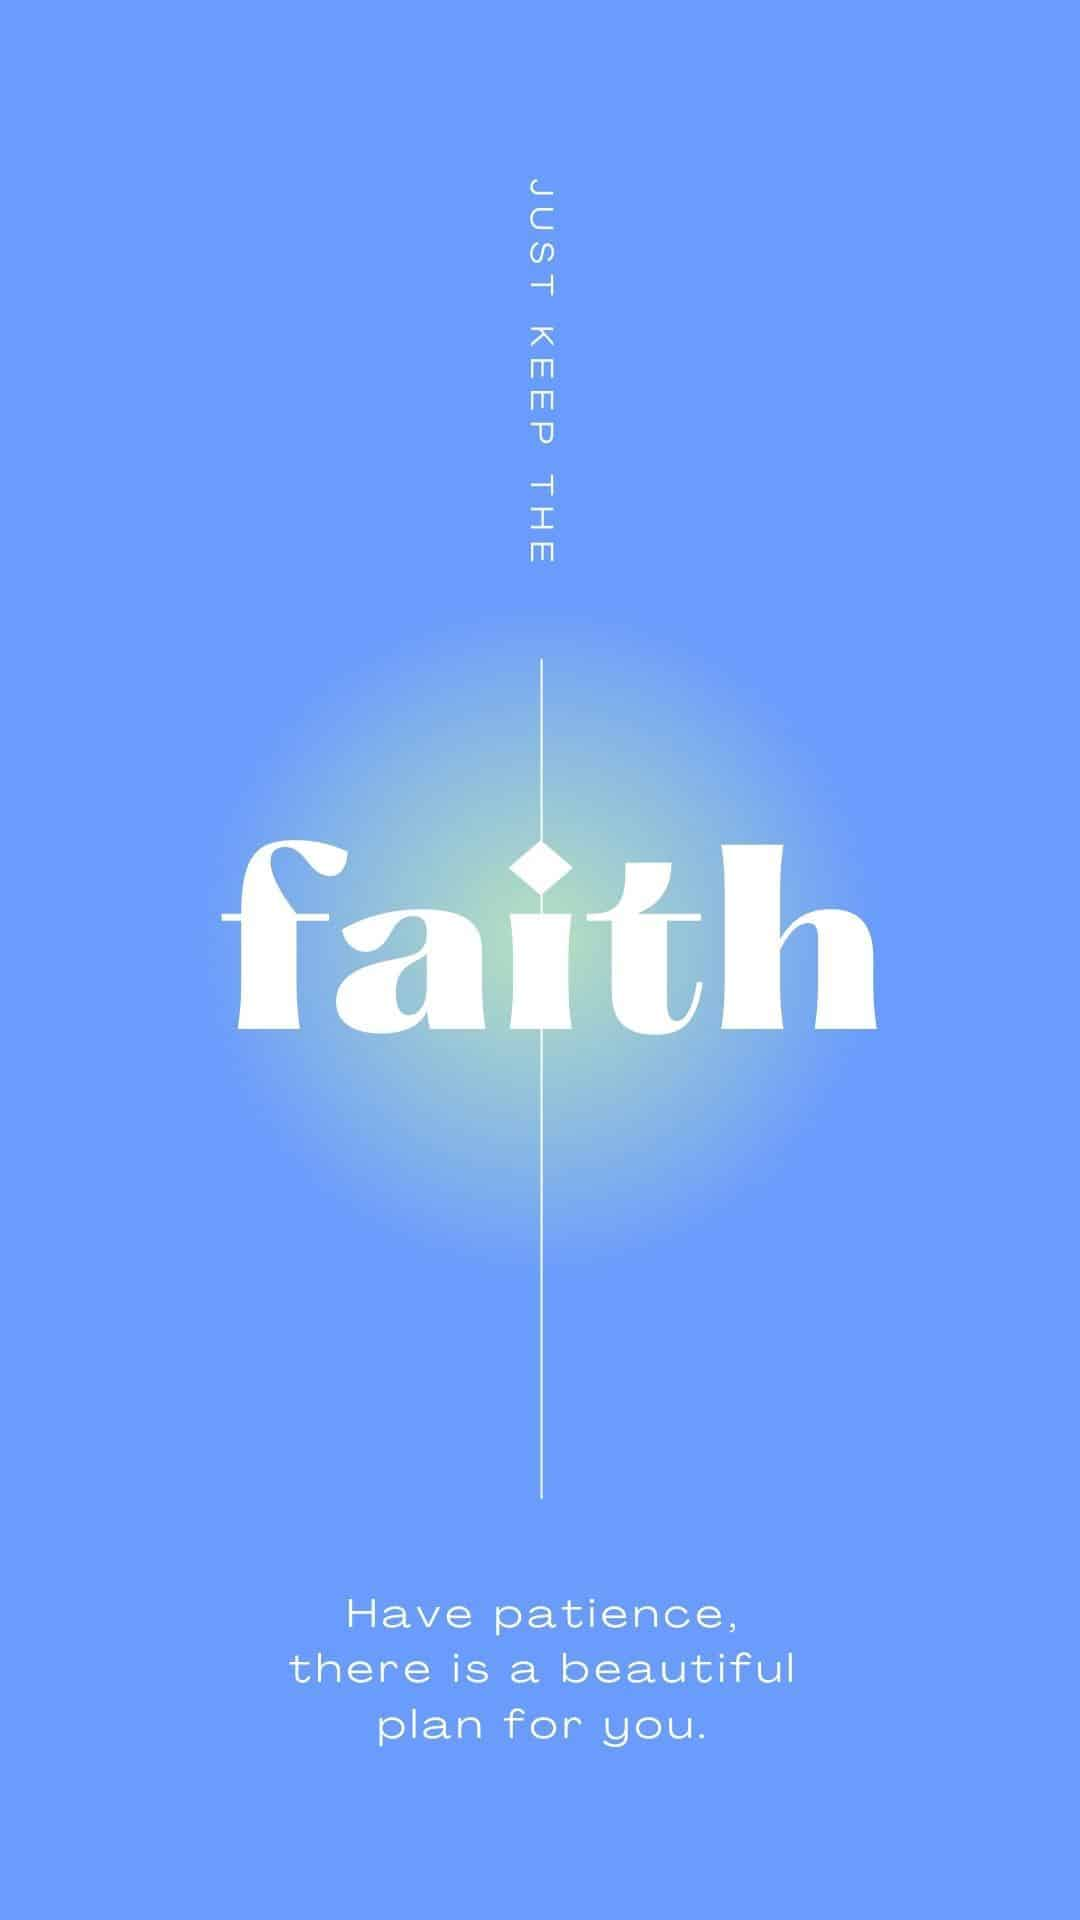 faith iphone wallpapers